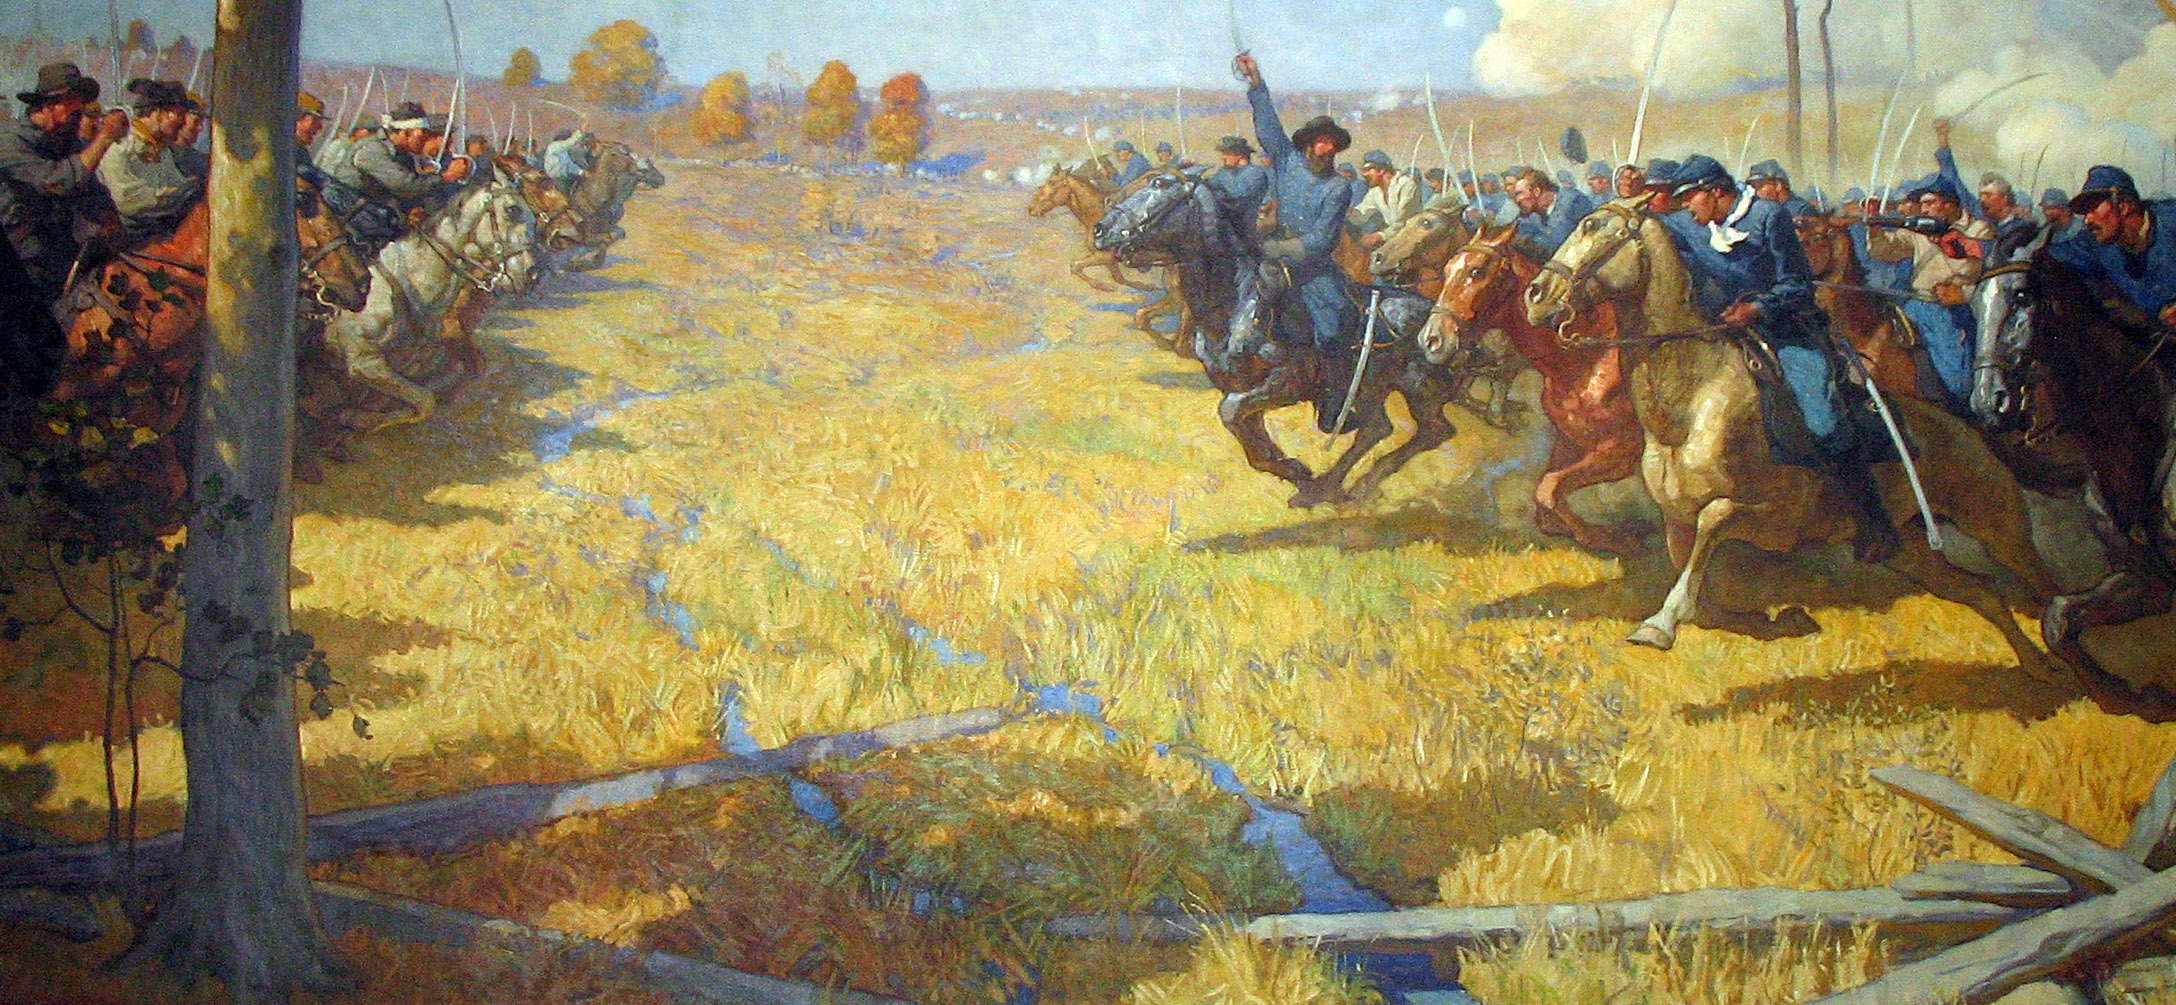 The climax of the Battle of Westport at Brush Creek in a fanciful painting by N.C. Wyeth at the Missouri State Capital. Though cavalry charges did take place, much of the fighting was dismounted. Some units lacked sabers altogether.